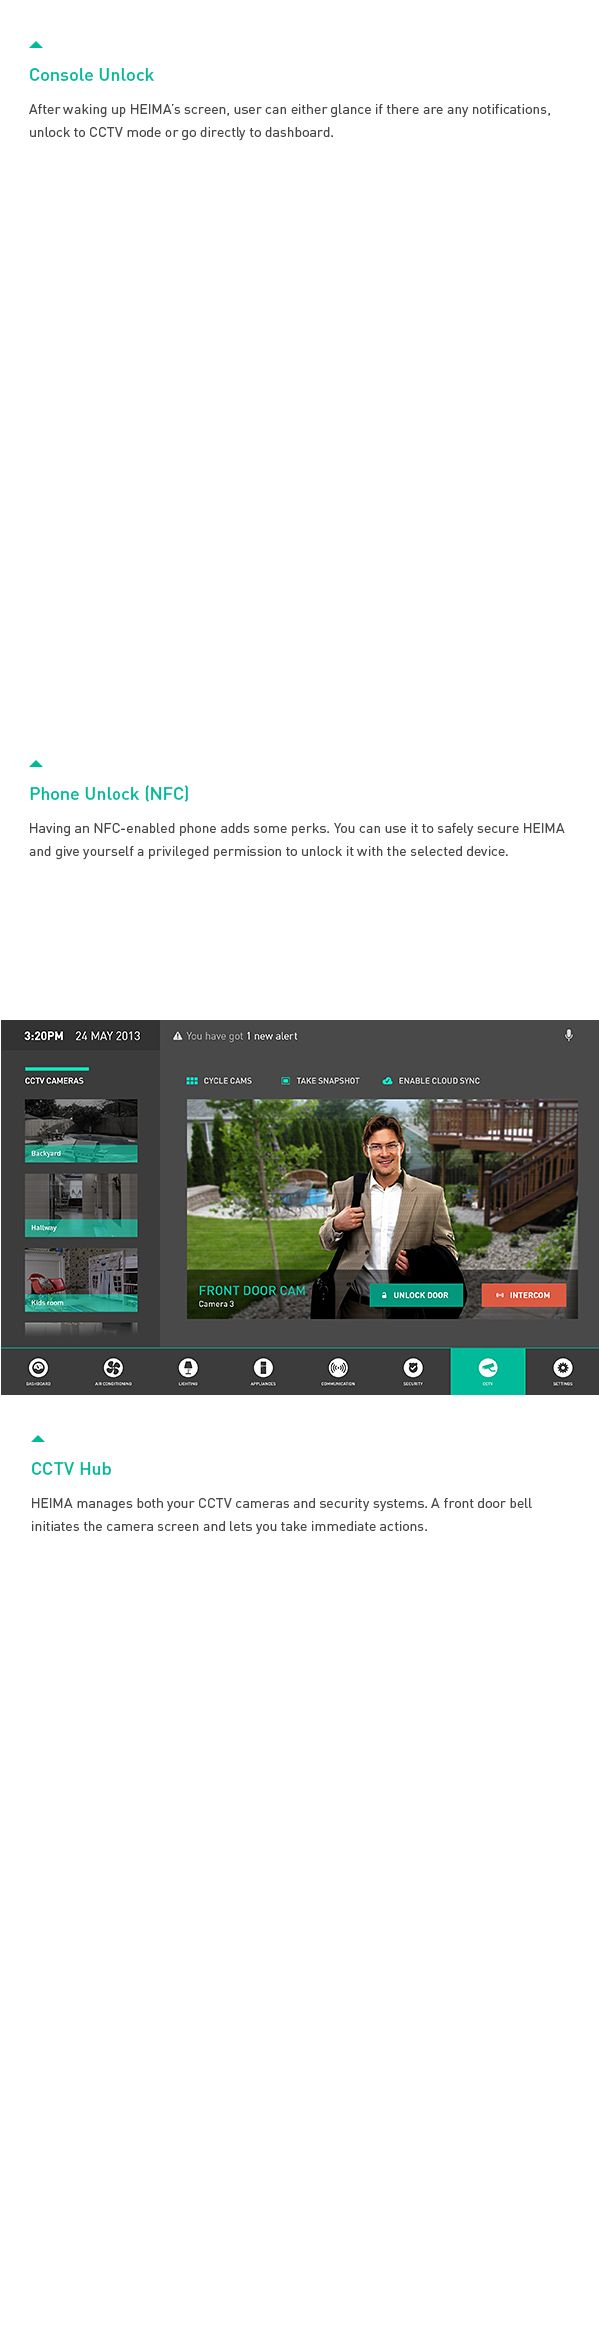 12 best Smart Home UI images on Pinterest | Honours degree ...